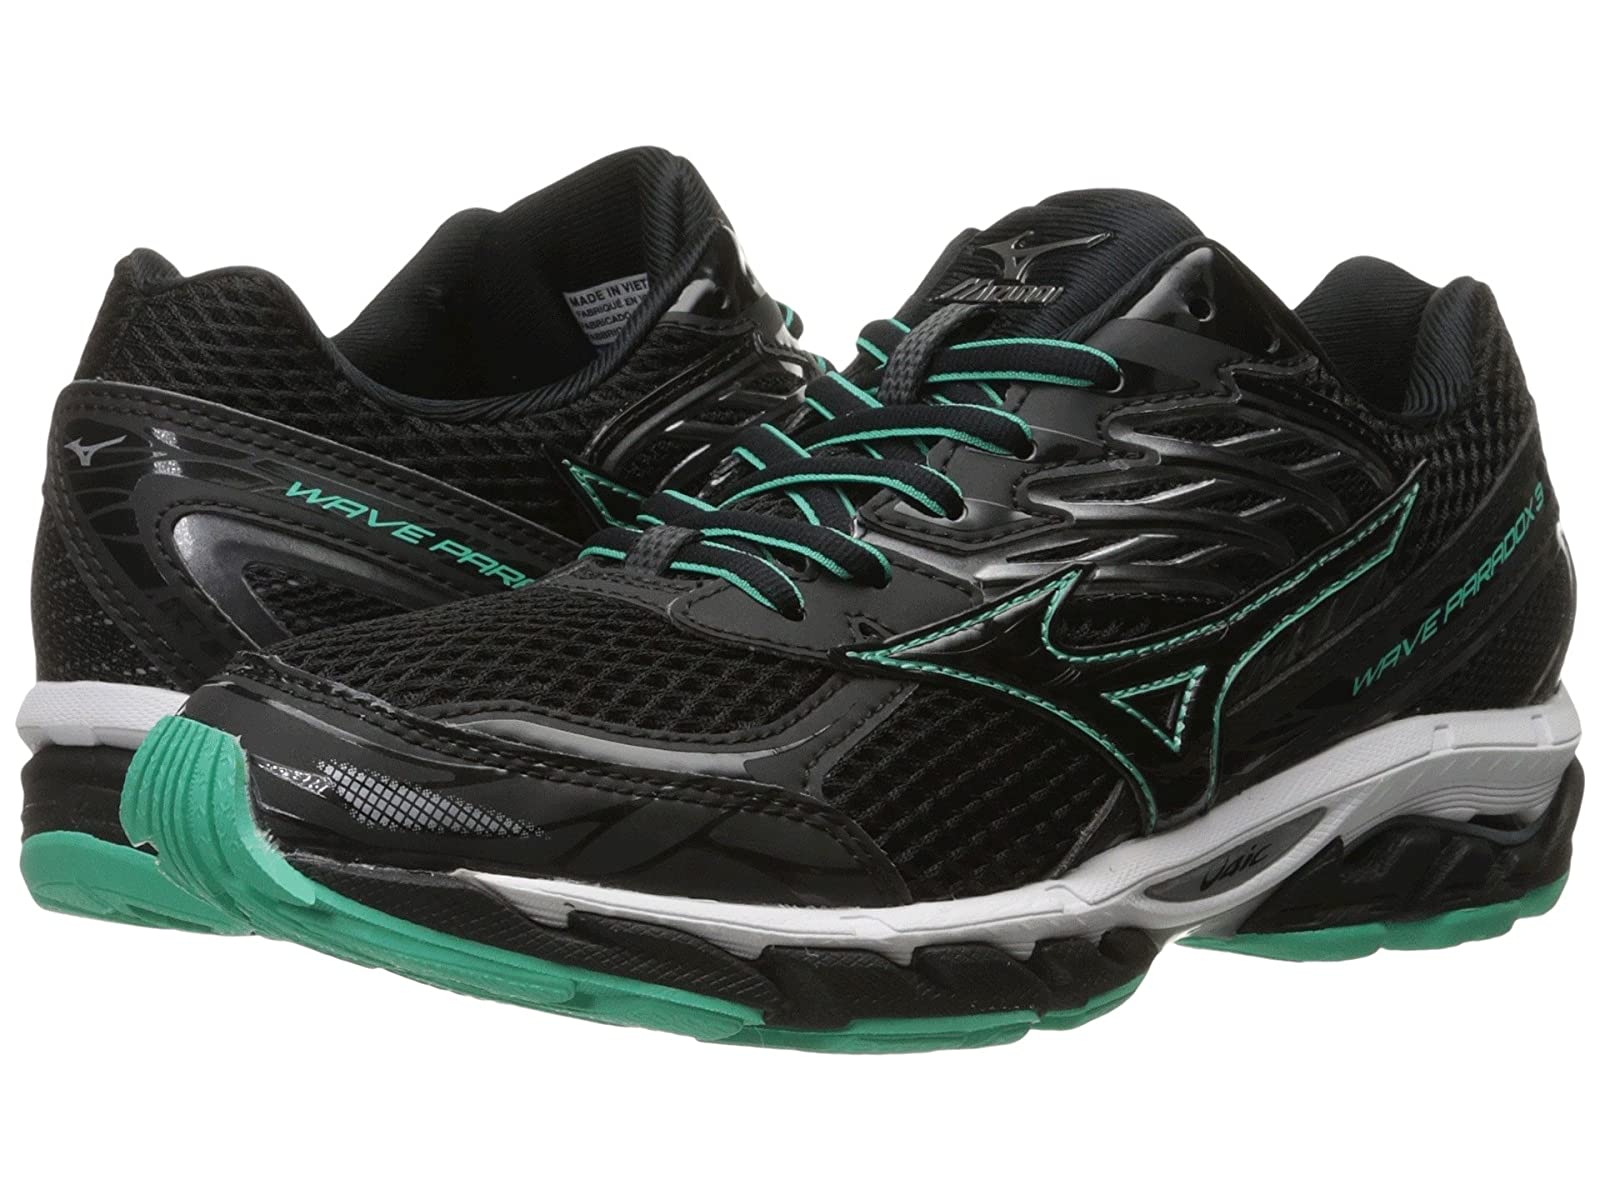 Mizuno Wave Paradox 3Cheap and distinctive eye-catching shoes